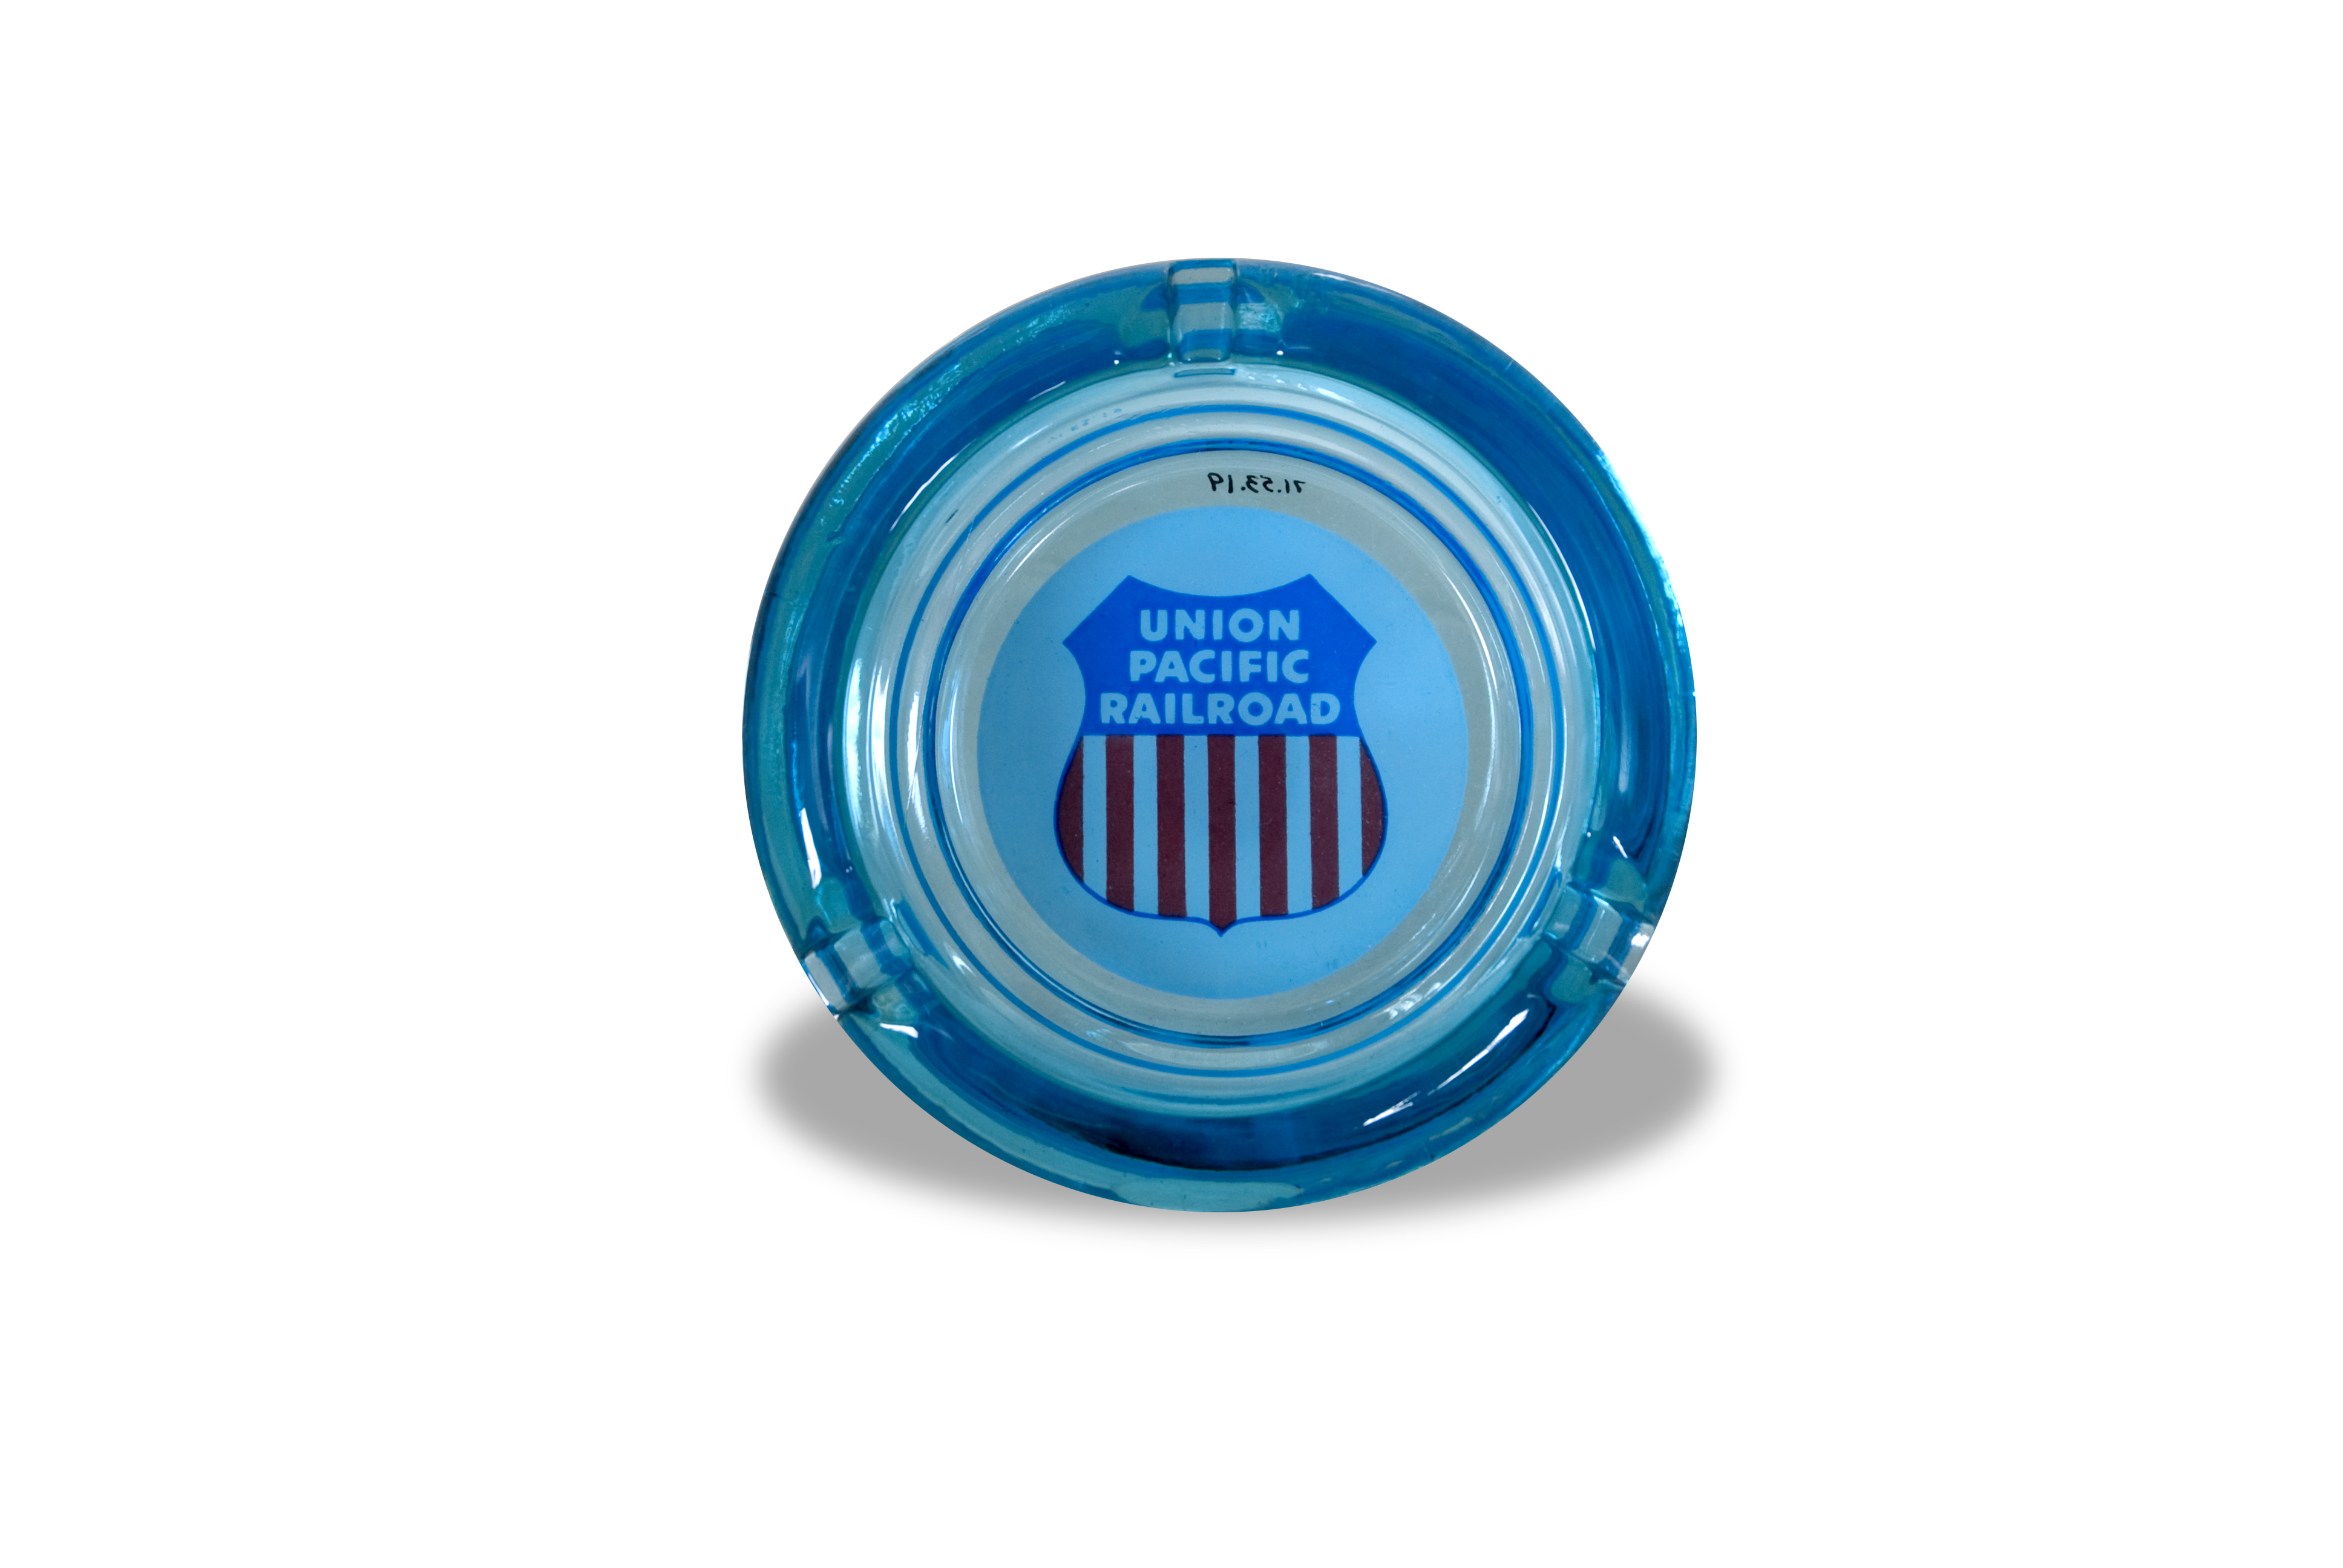 Union Pacific blue ashtray